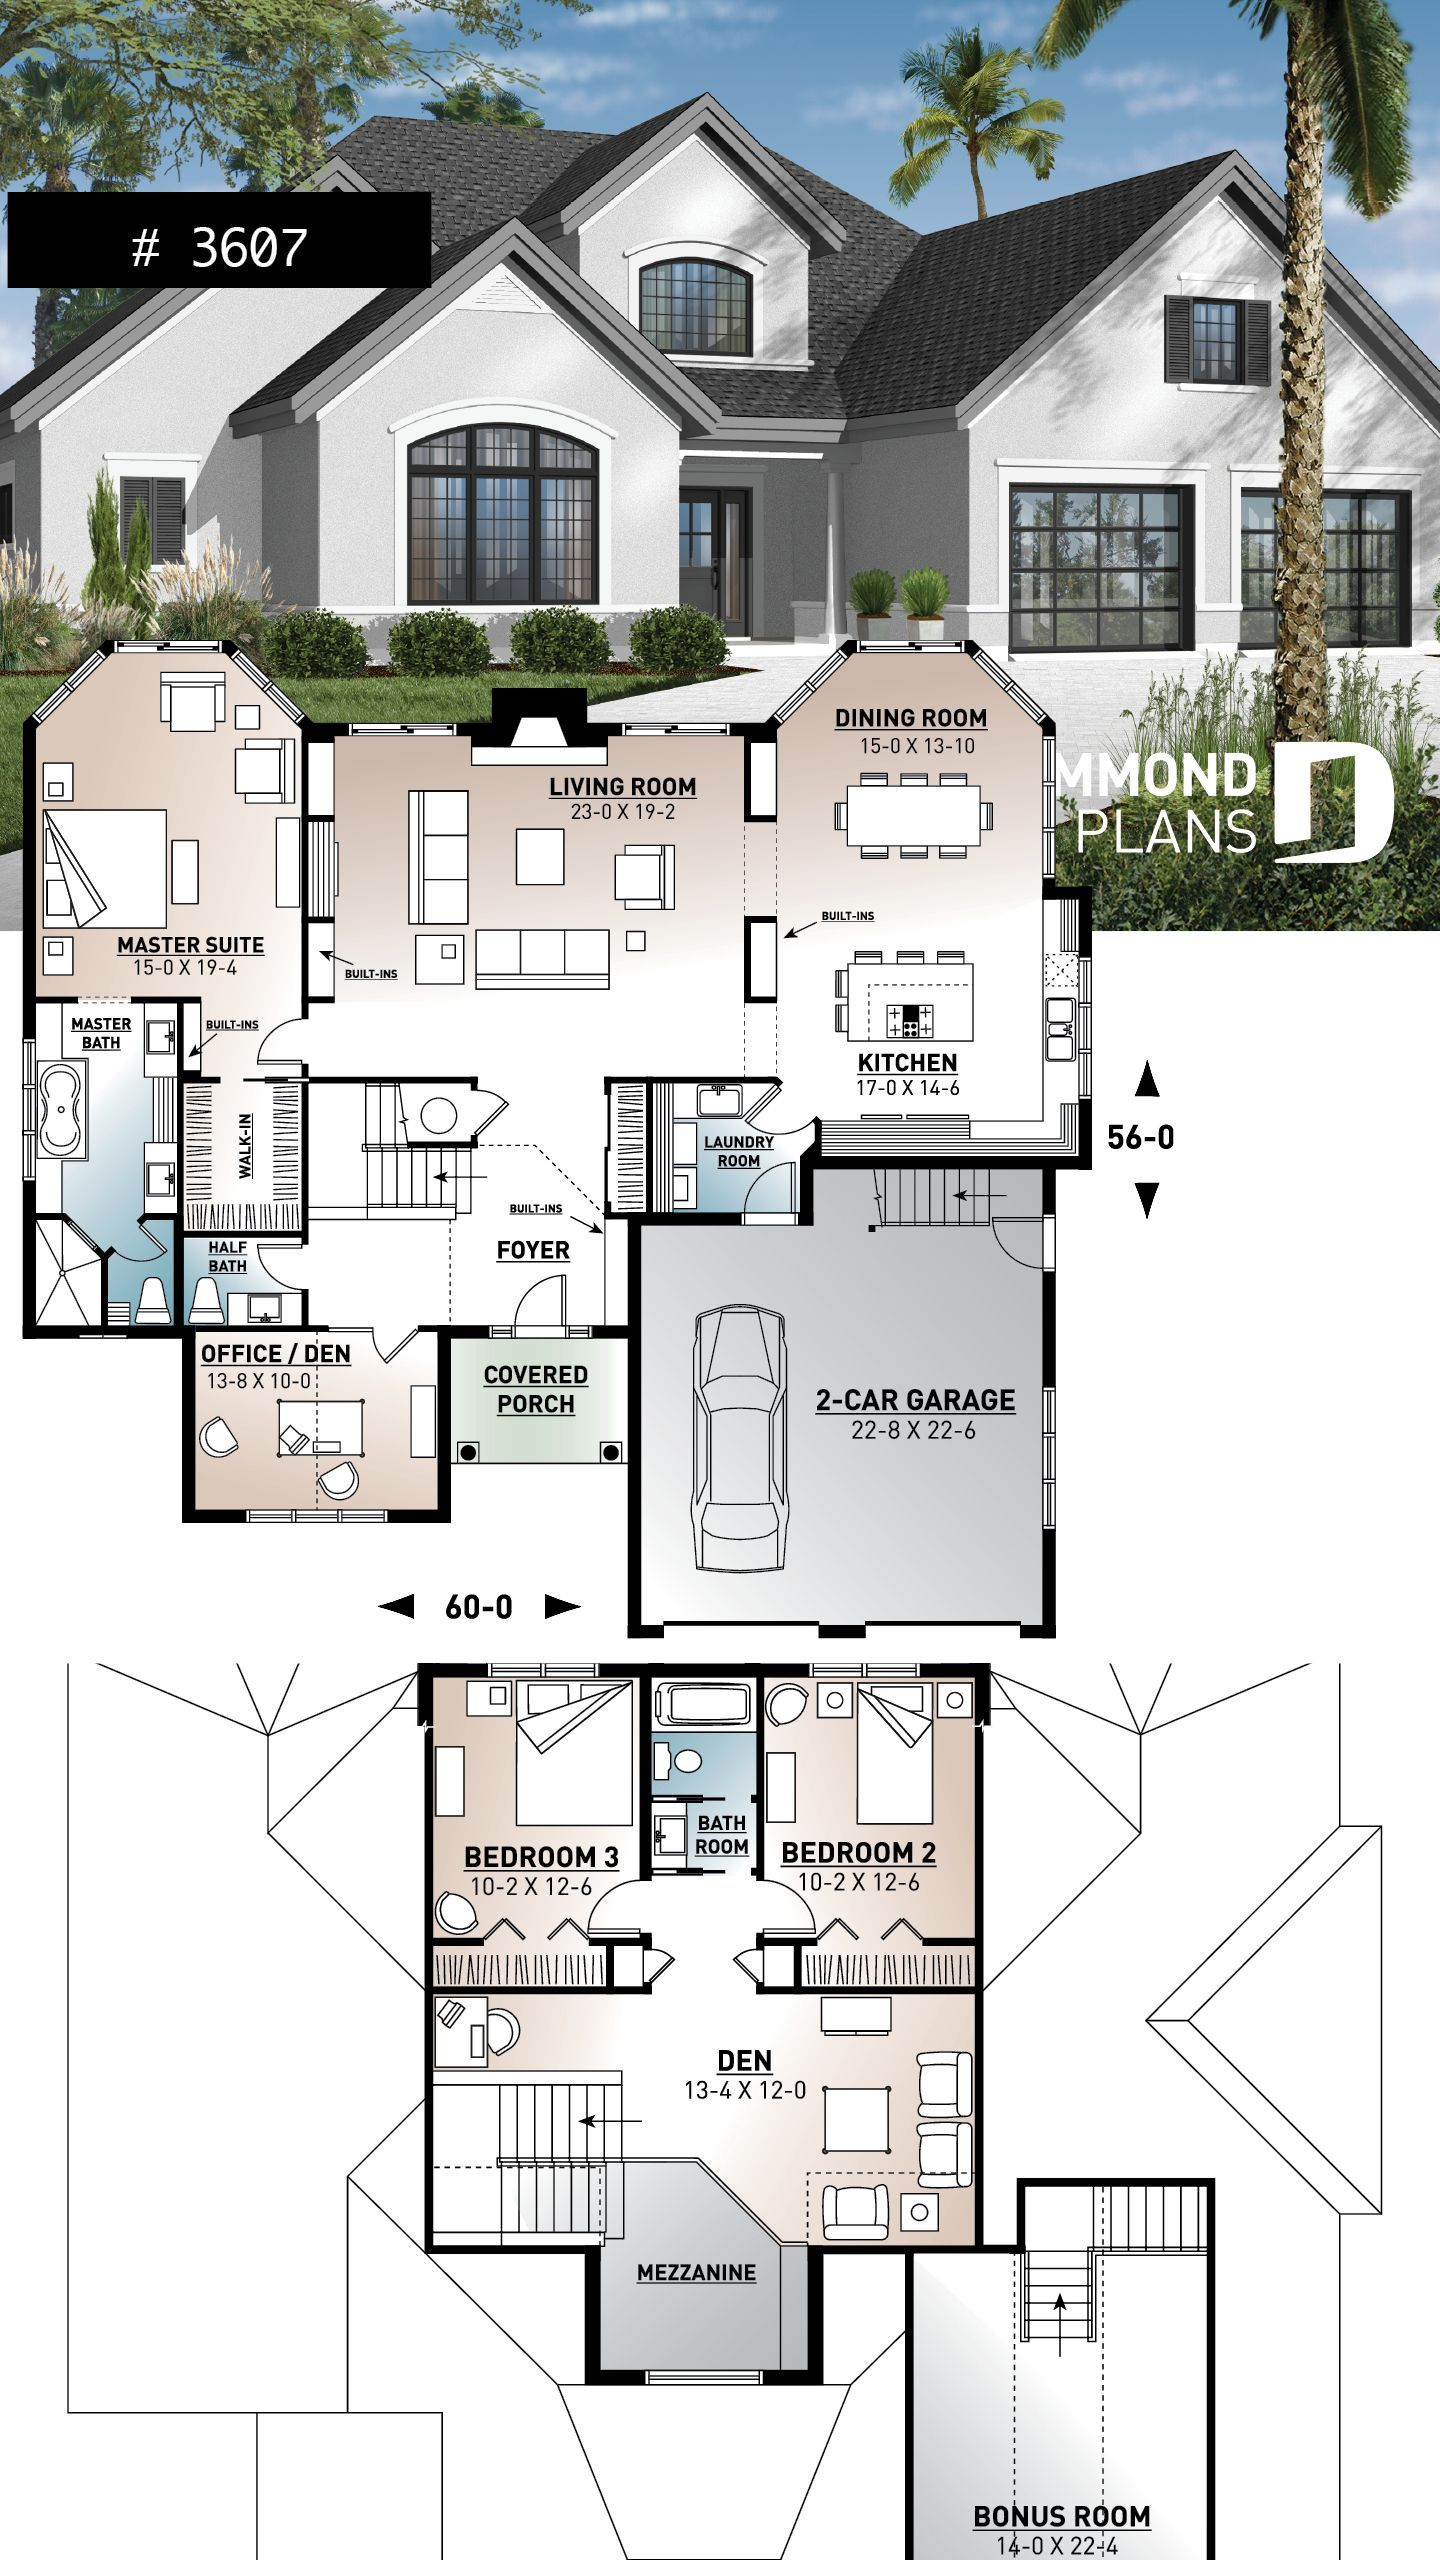 Florida Style Home Plan With Ensuite And 4 Bedrooms Bedrooms Ensuite Florida Home Plan Style In 2020 Sims House Plans House Blueprints Craftsman House Plans